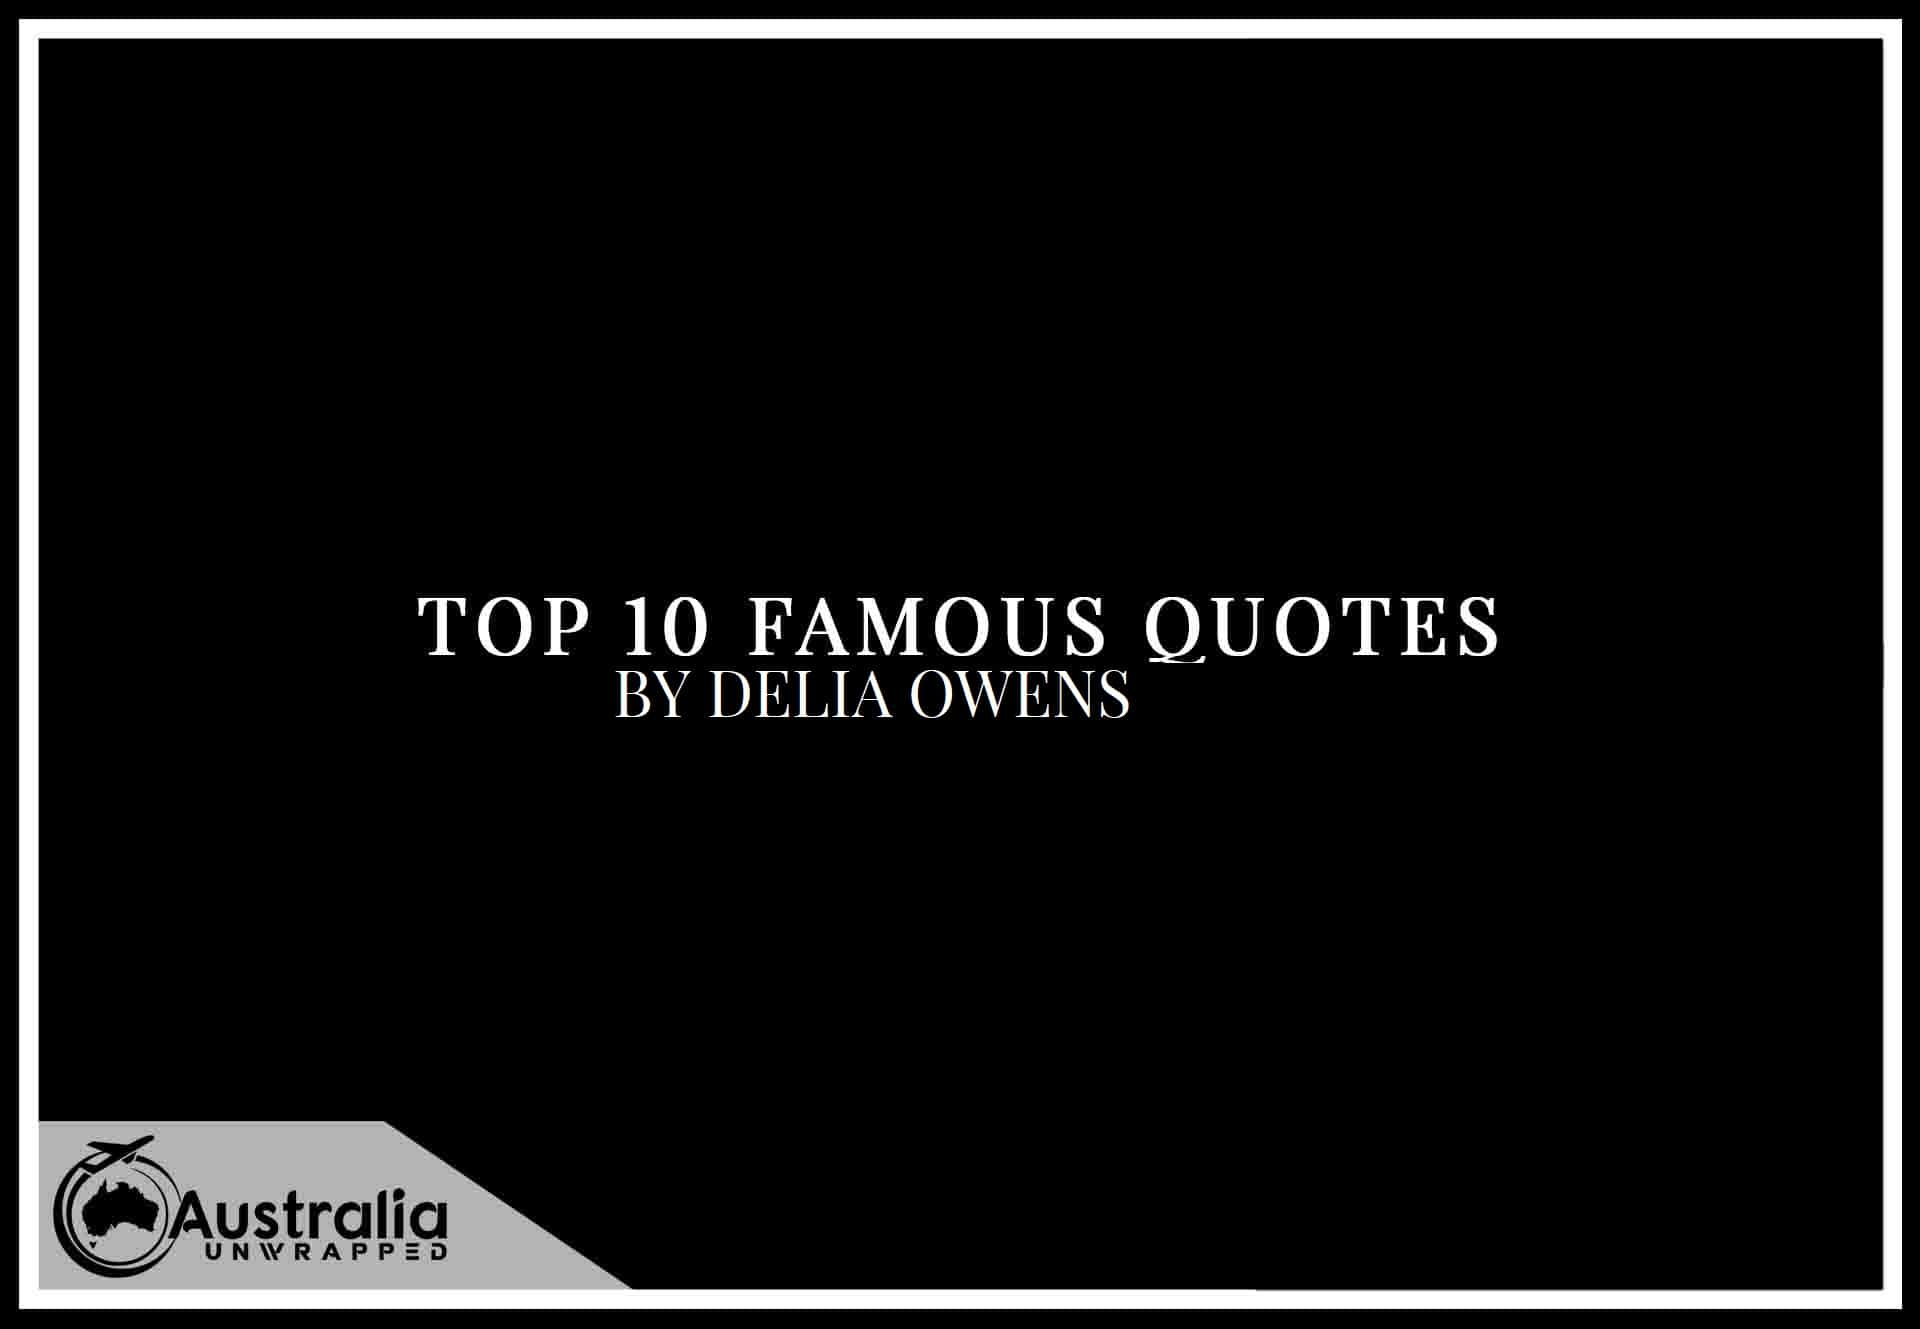 Top 10 Famous Quotes by Author Delia Owens